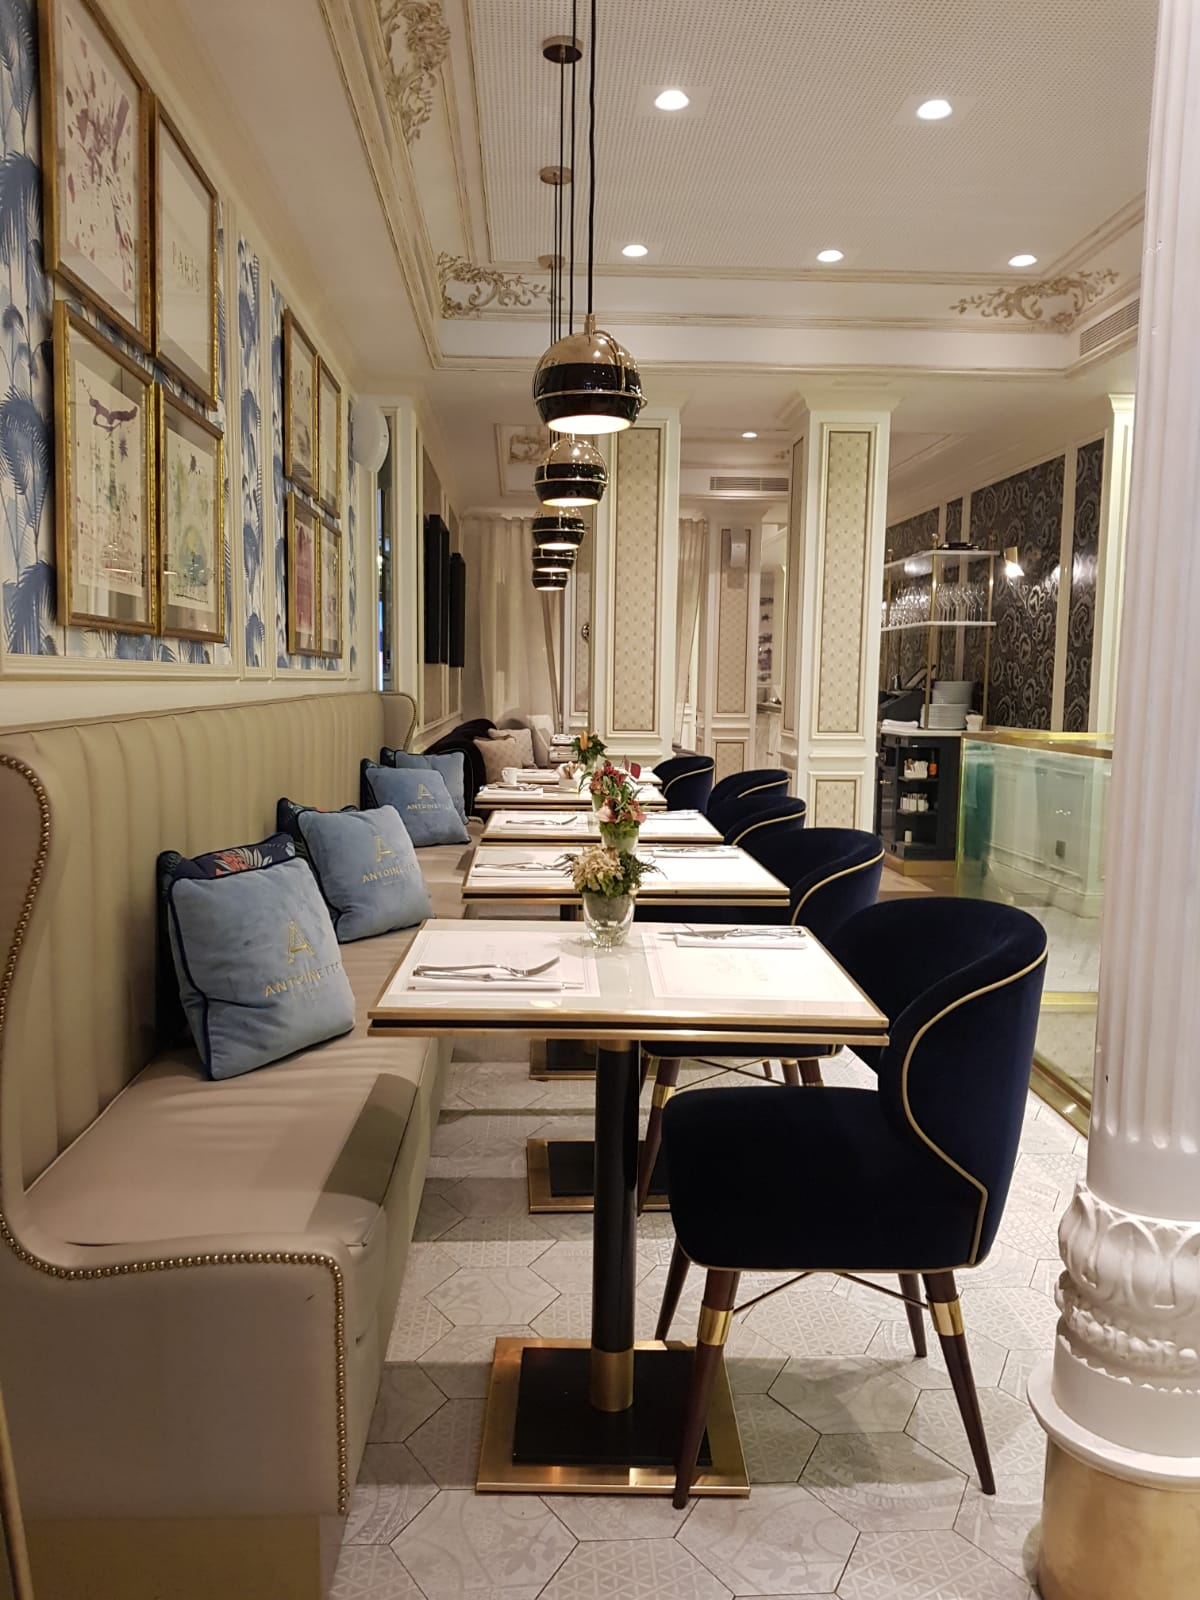 Brasserie Antoinette Project by Ottiu in Madrid Spain | Emotional Brands